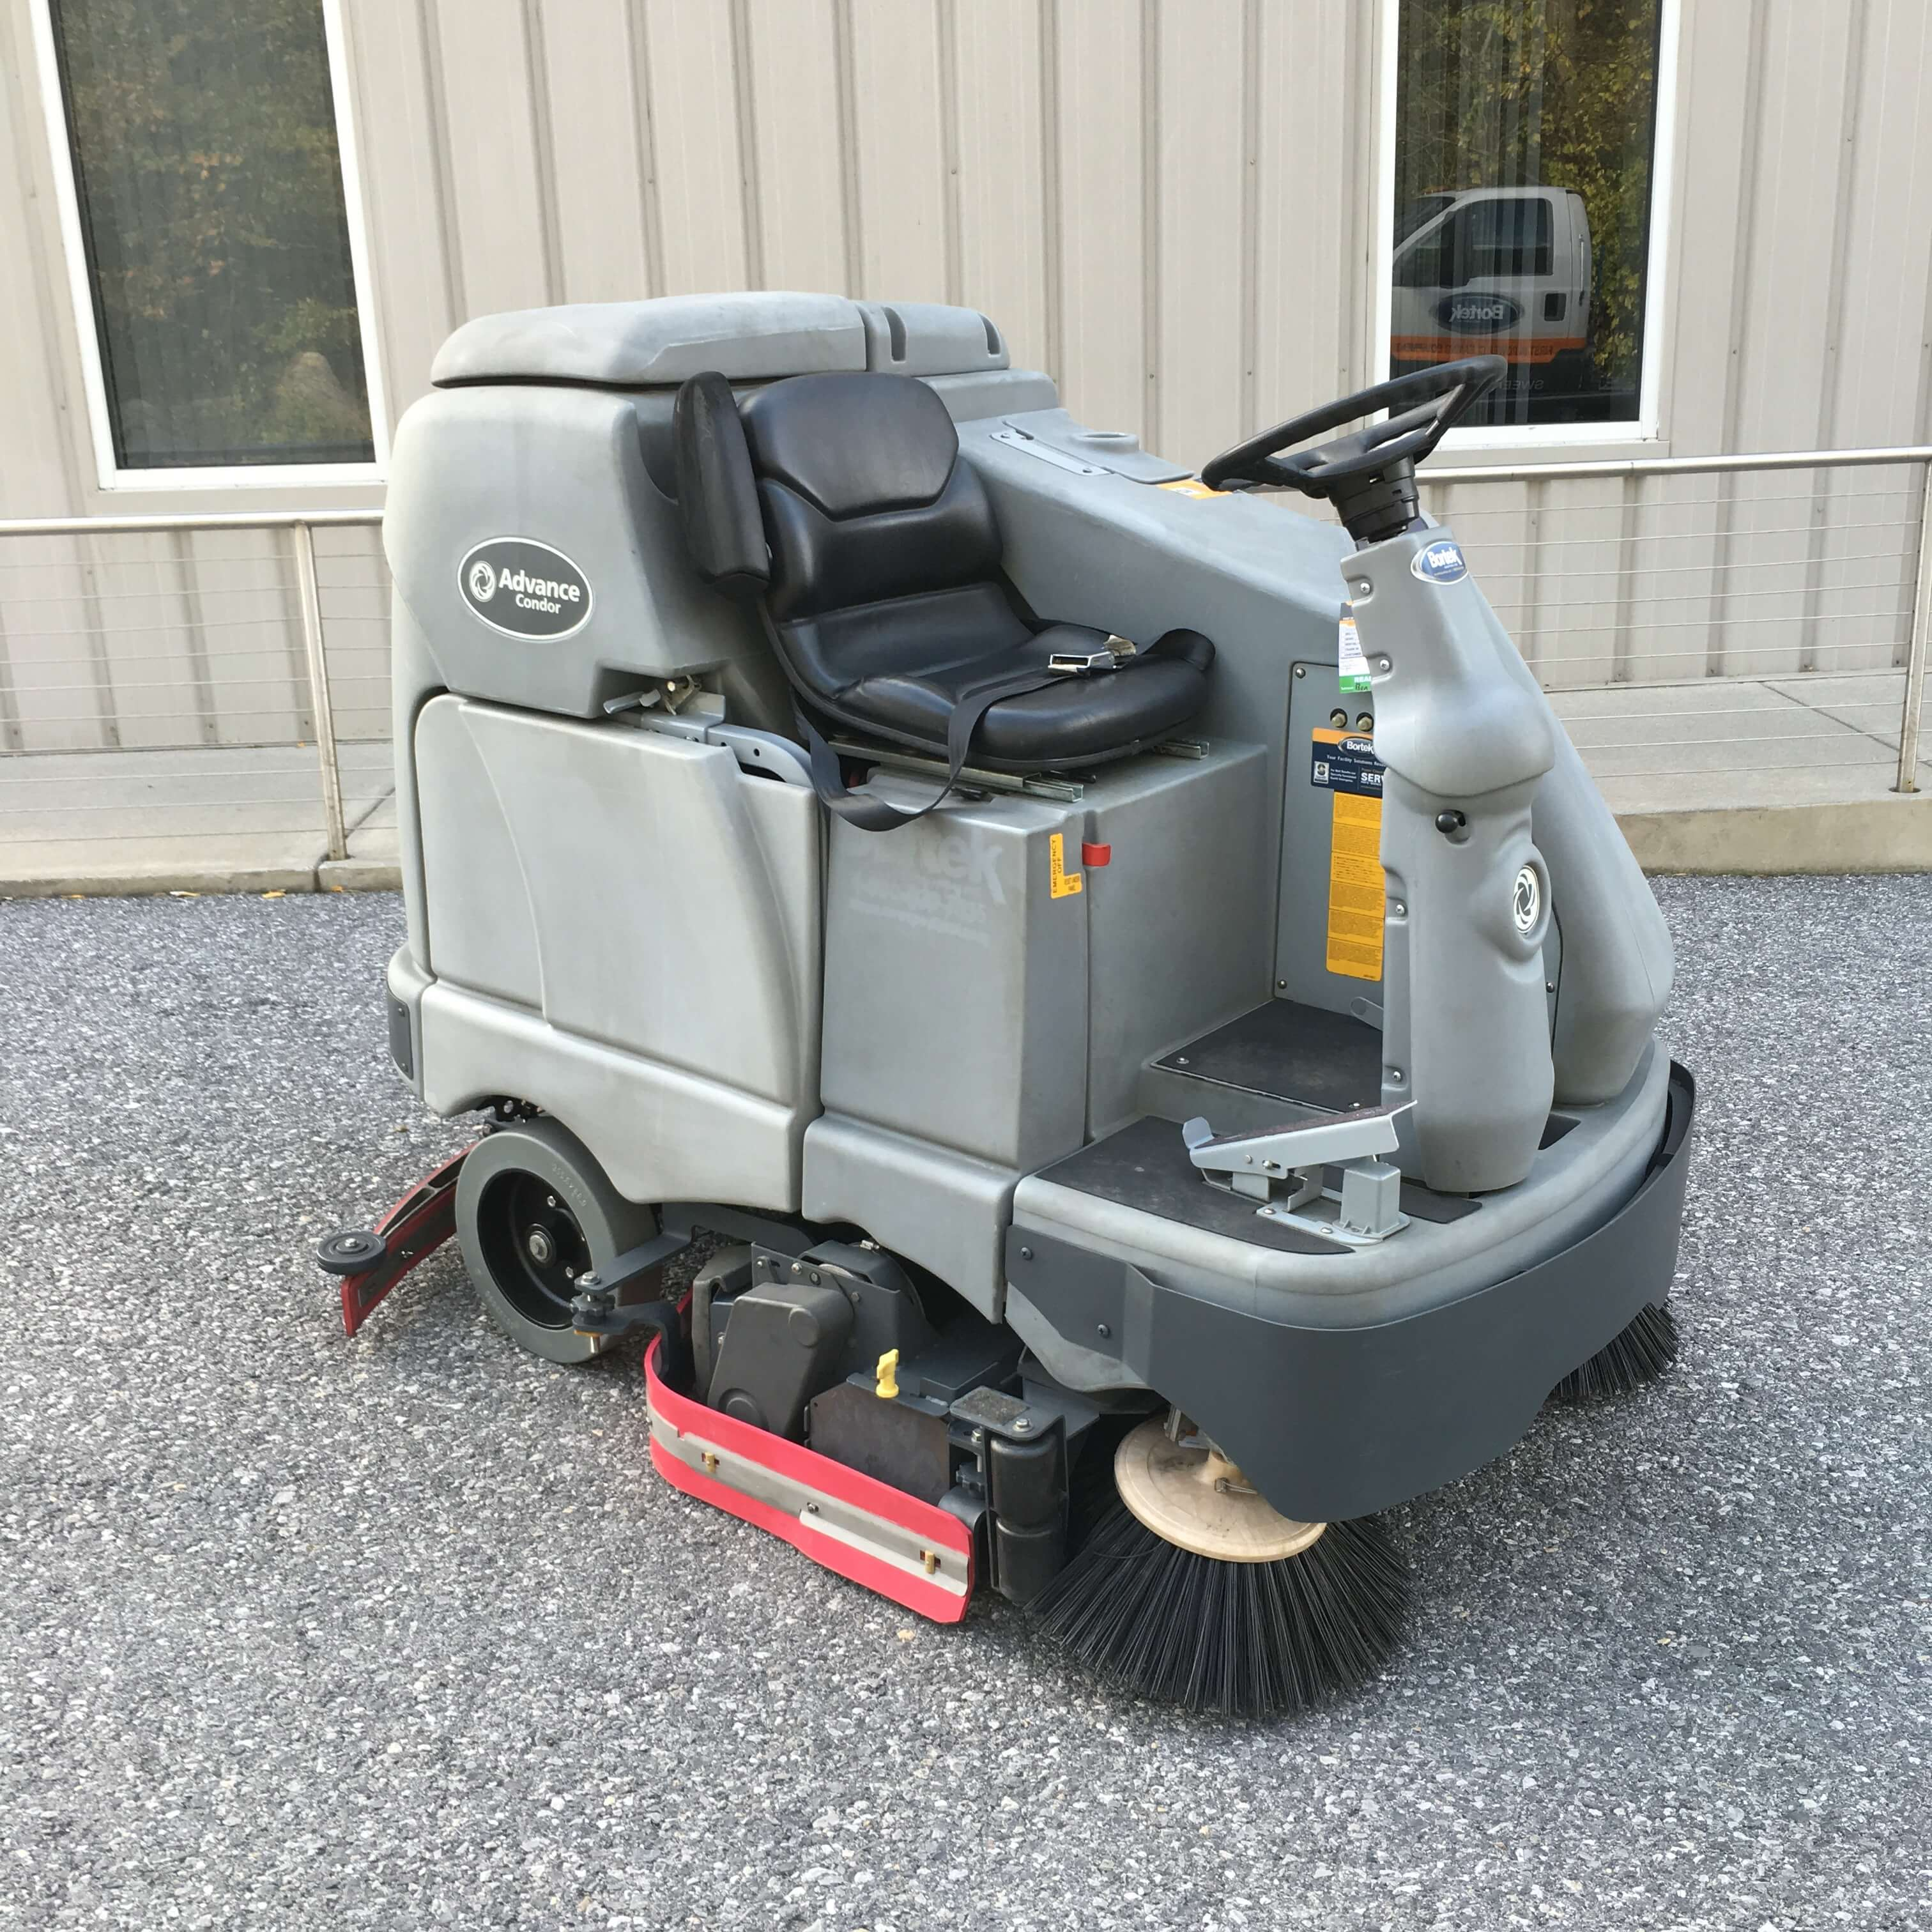 auto automatic focus autoscrubber scrubber floor clarke boost floors ii powered battery operated minuteman